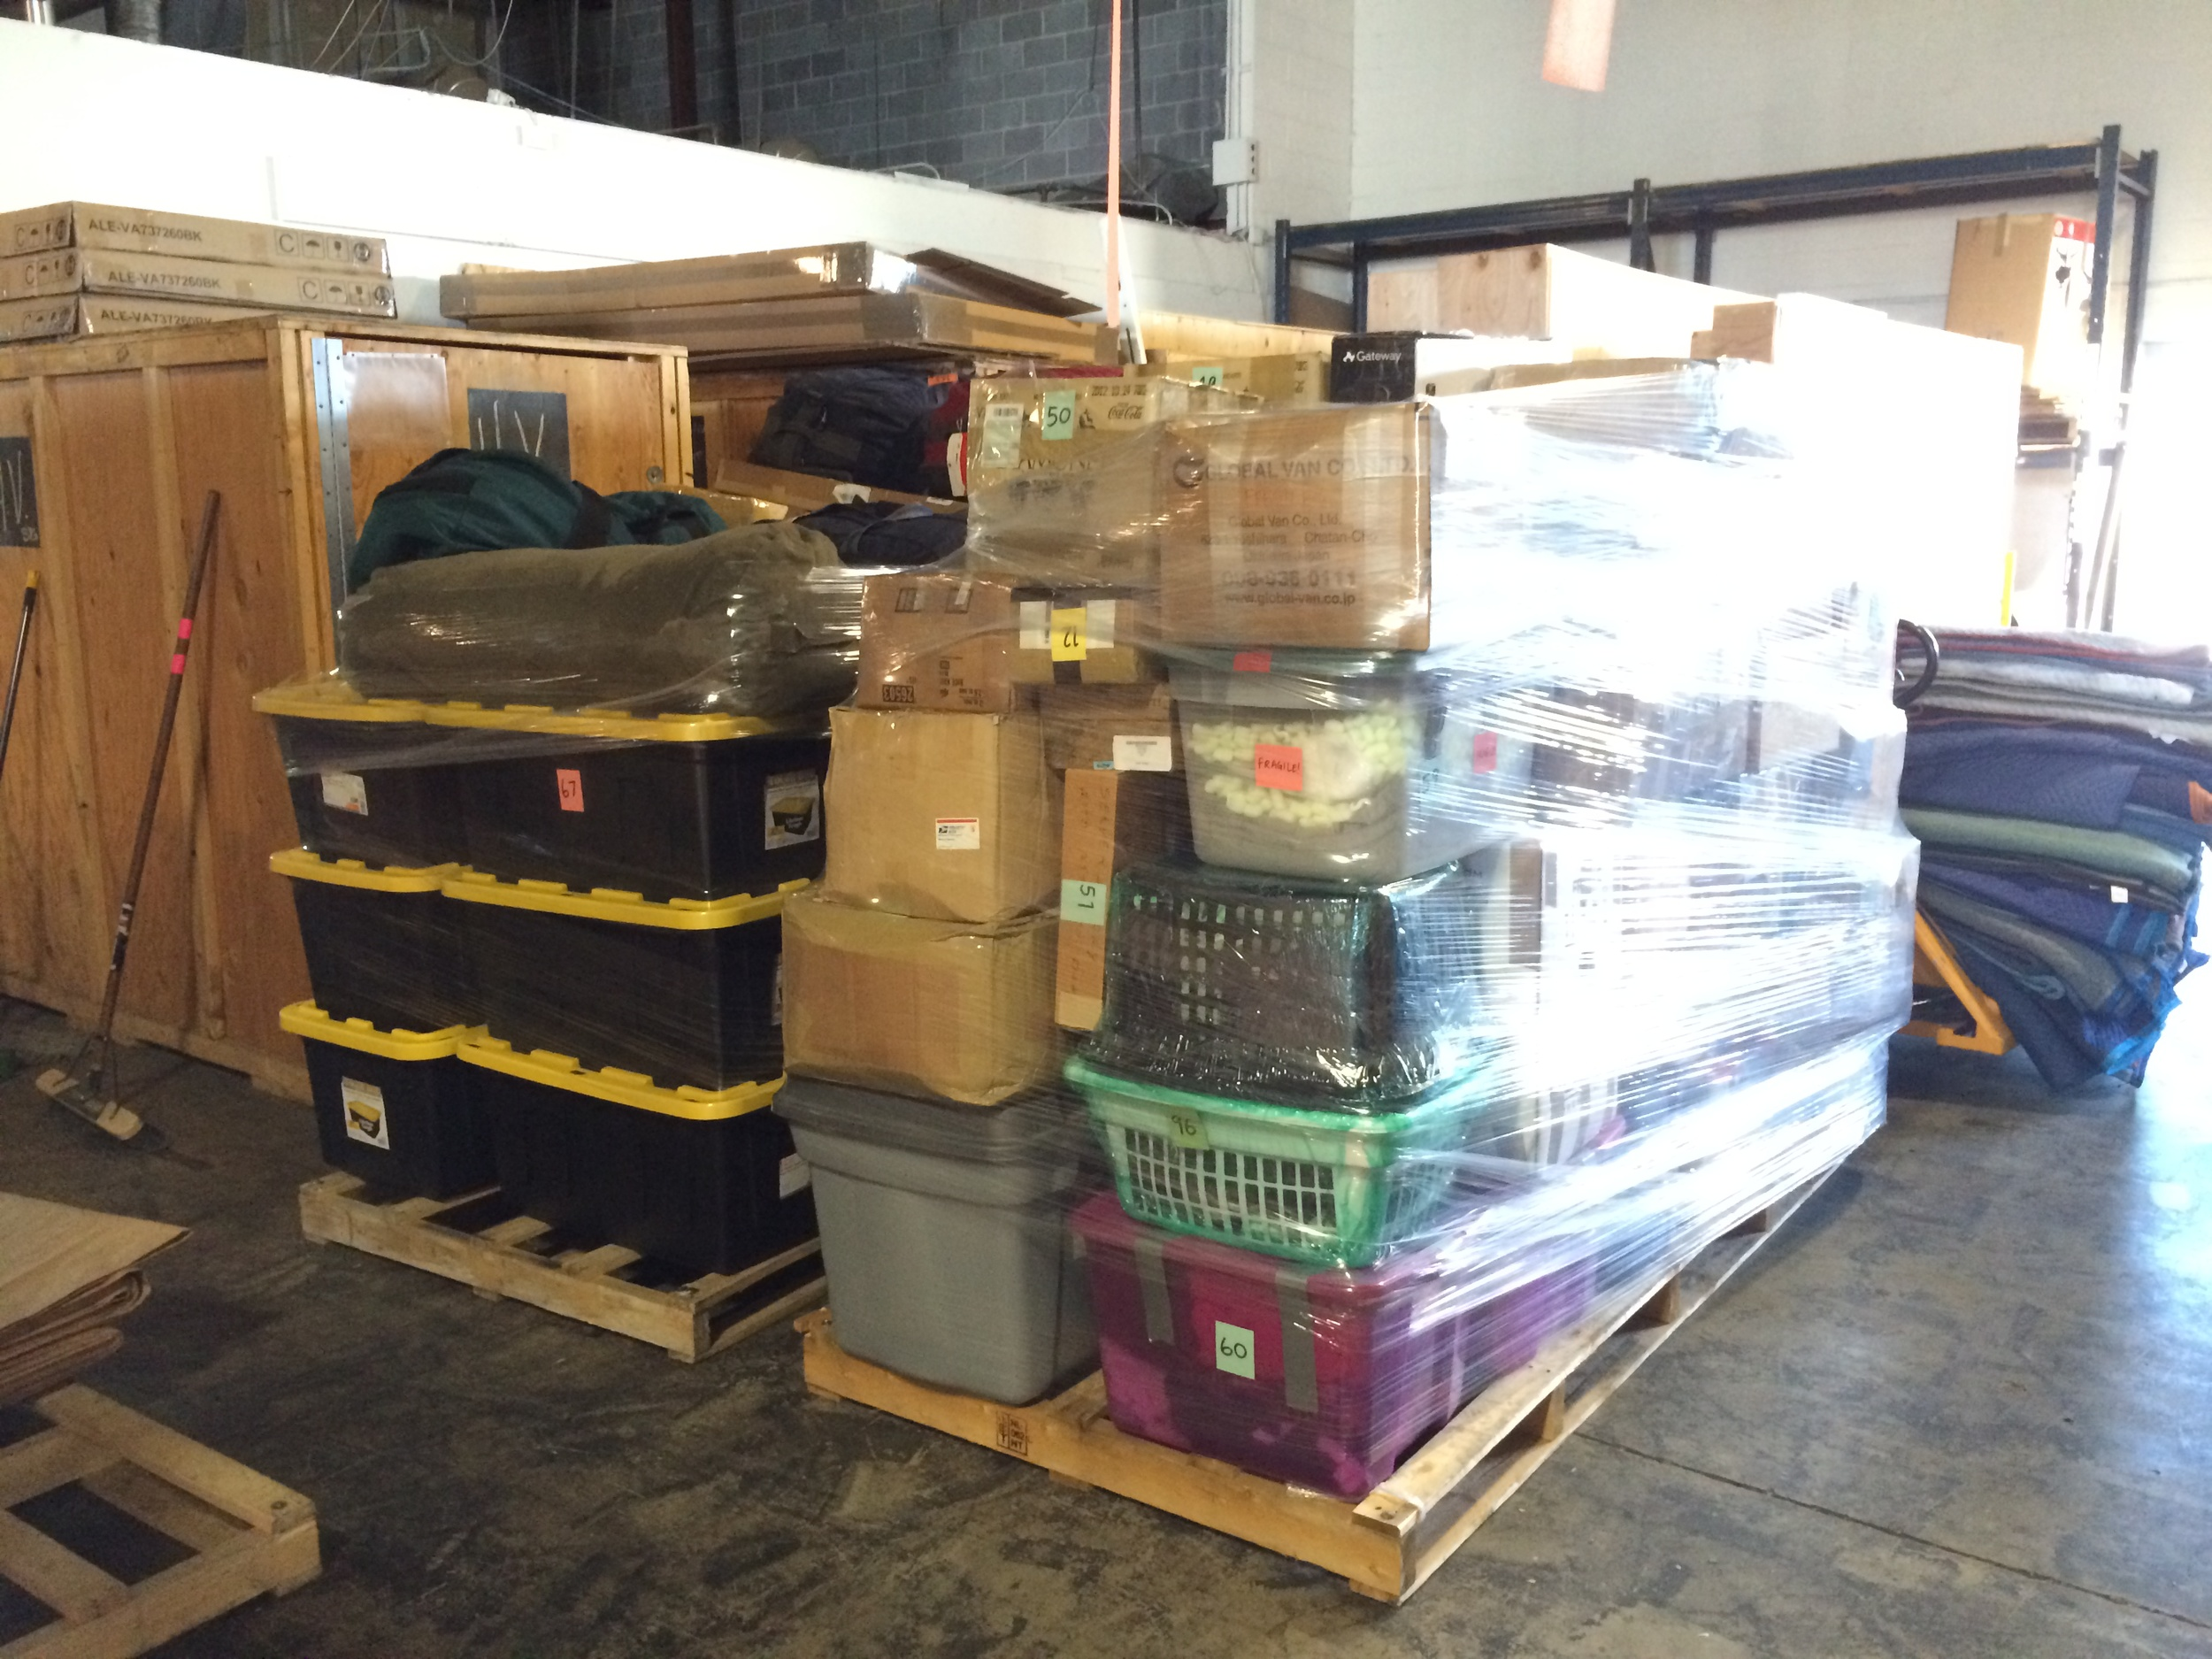 All 125 of our boxes fit onto two palettes.